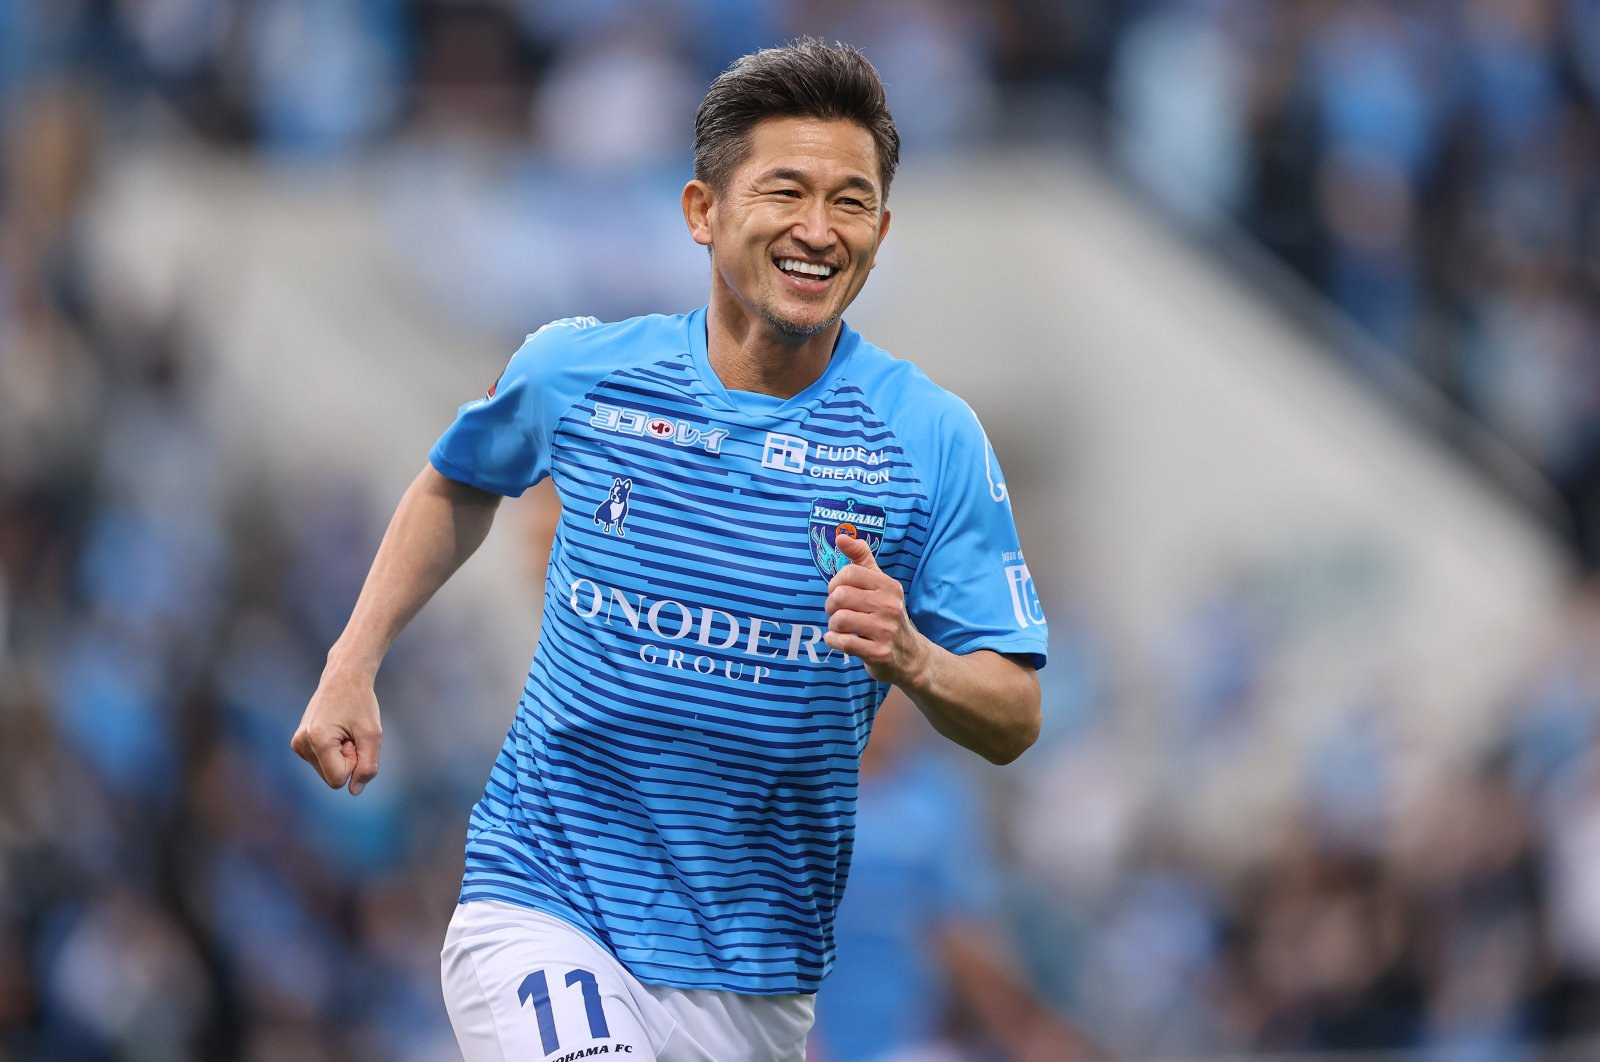 Yokohama FC's Kazuyoshi Miura in action during a J-League match against Vissel Kobe, in Kanagawa, Japan, Nov. 8, 2020. (Reuters Photo)